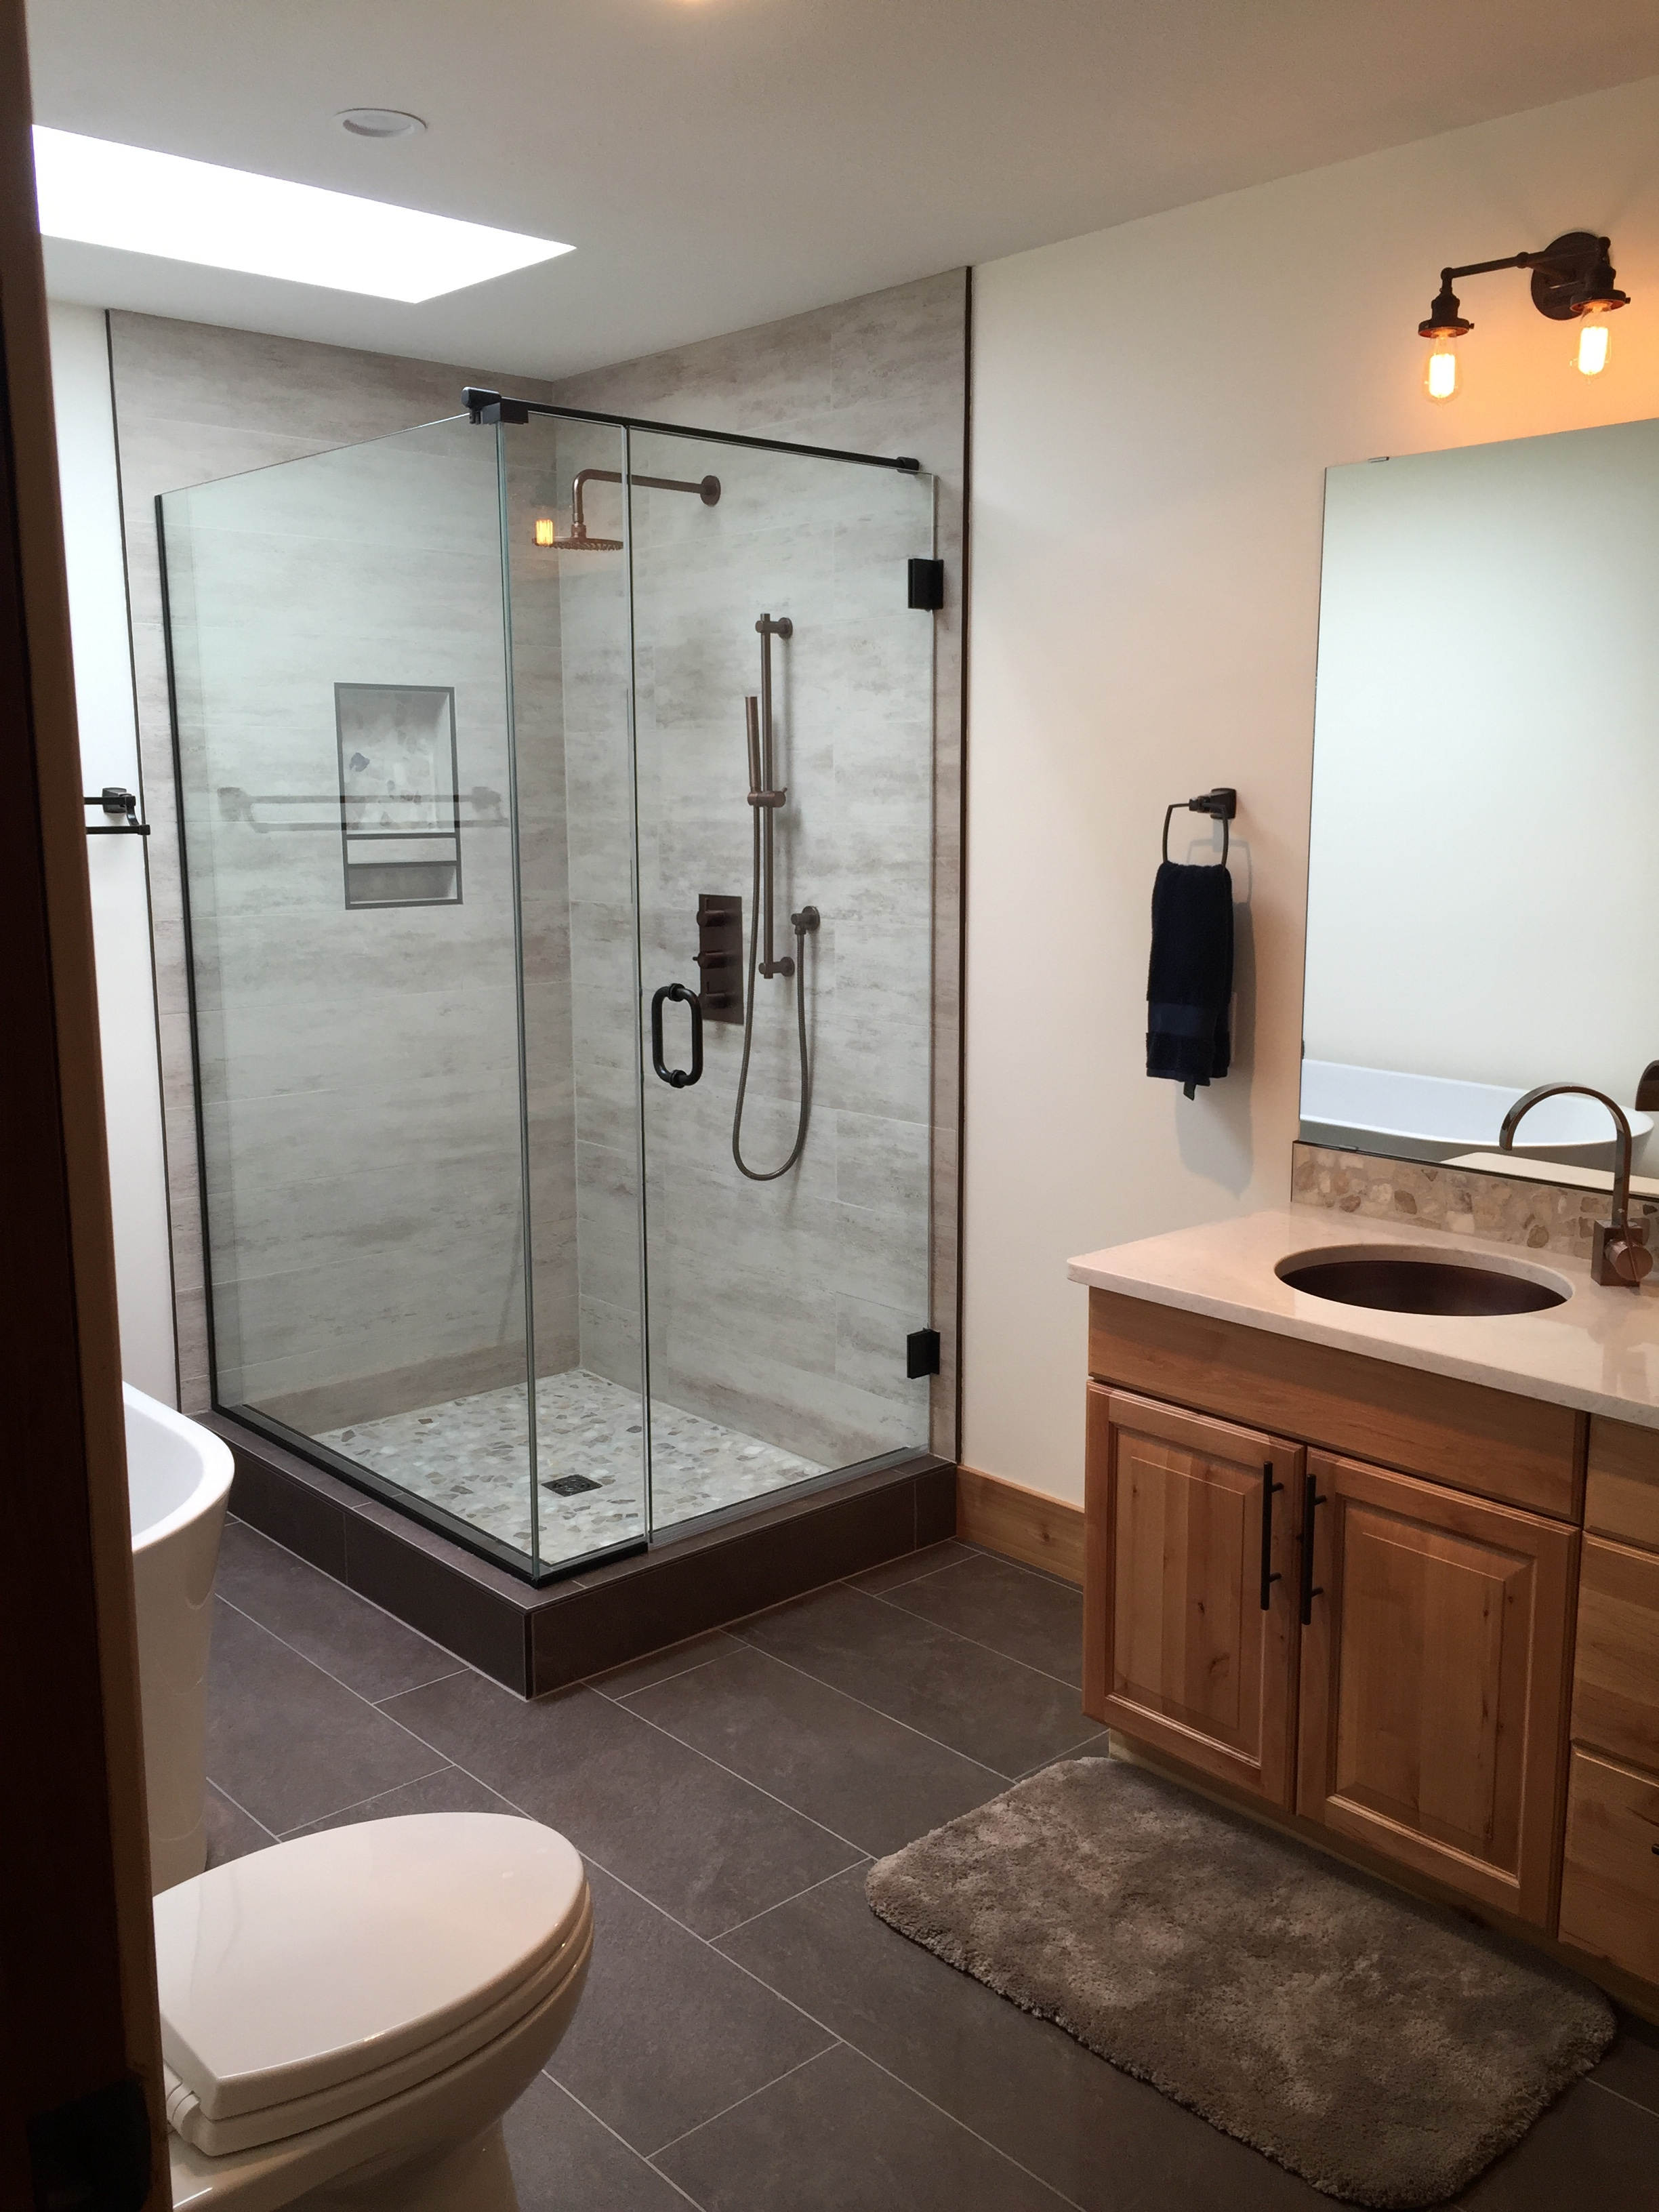 Custom shower and cabinetry, porcelain, pebbles and aged bronze fixtures.